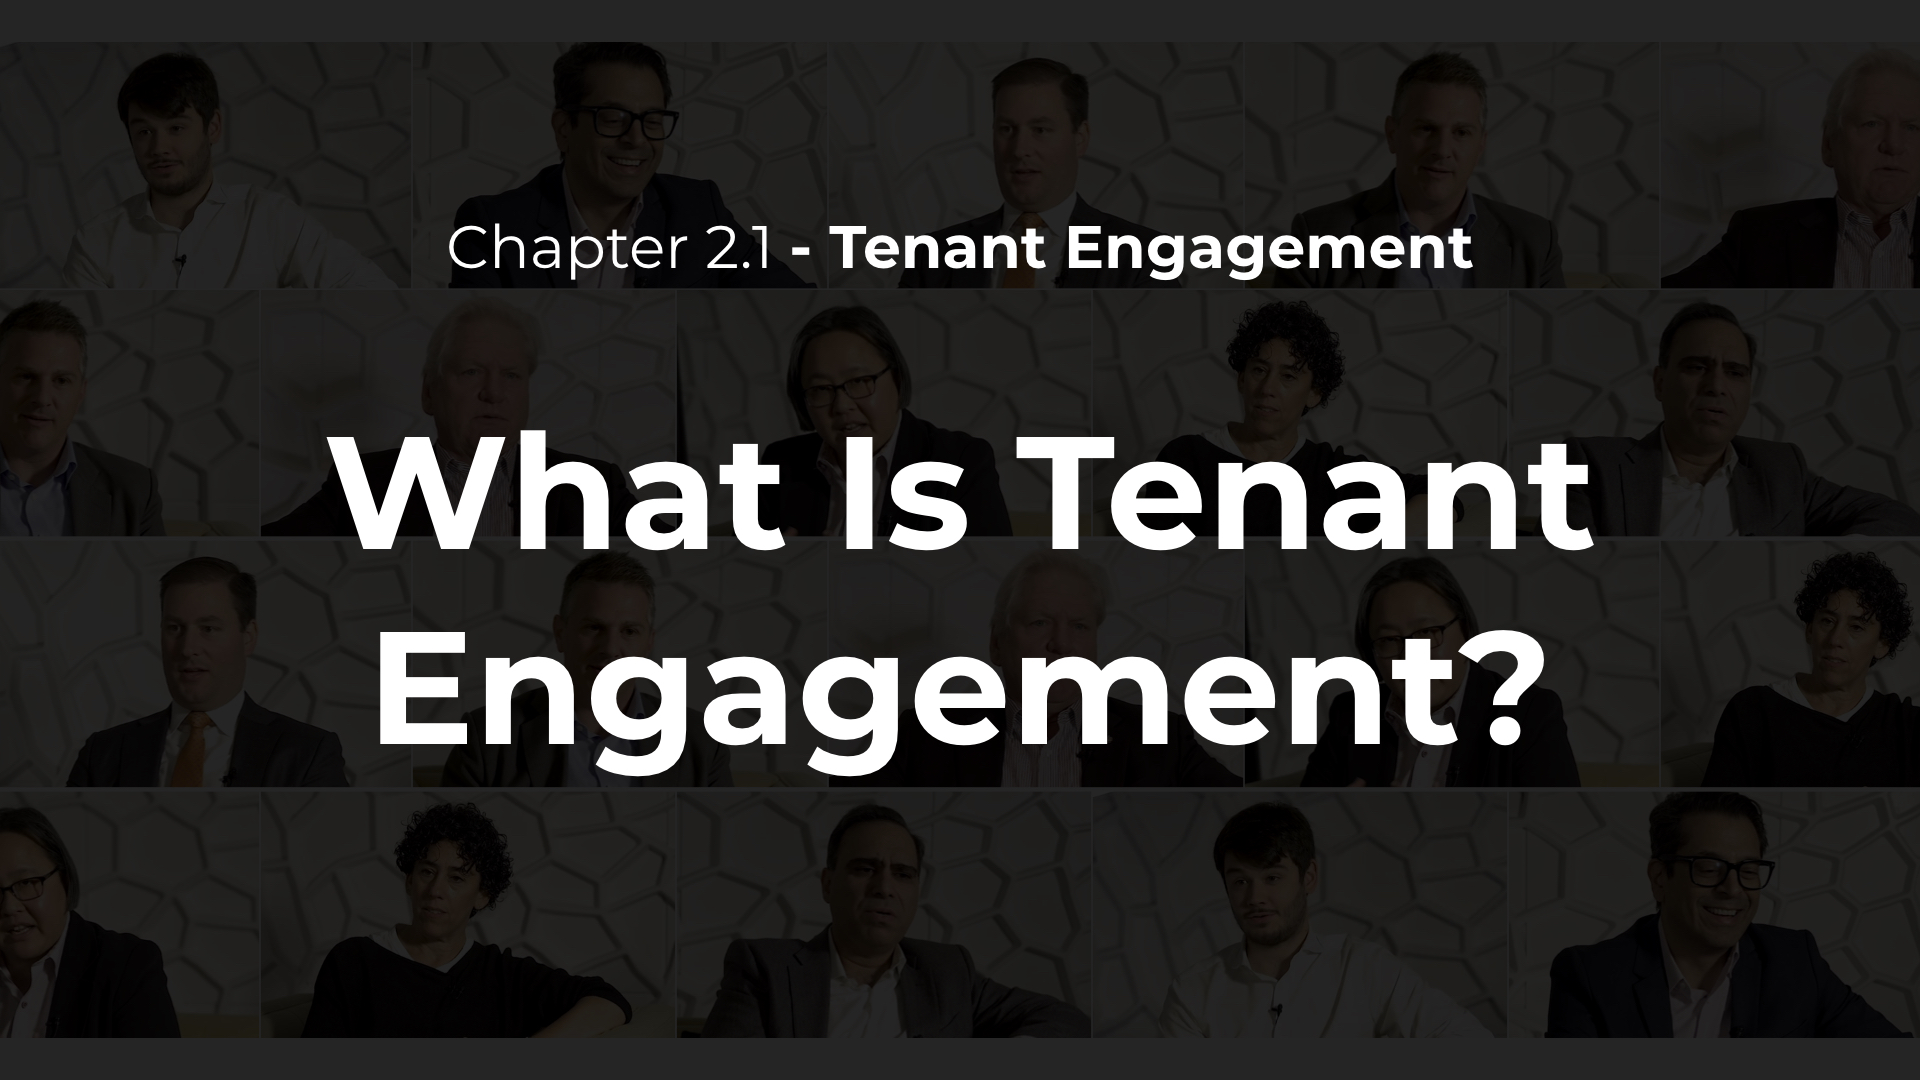 2.1 - What Is Tenant Engagement?